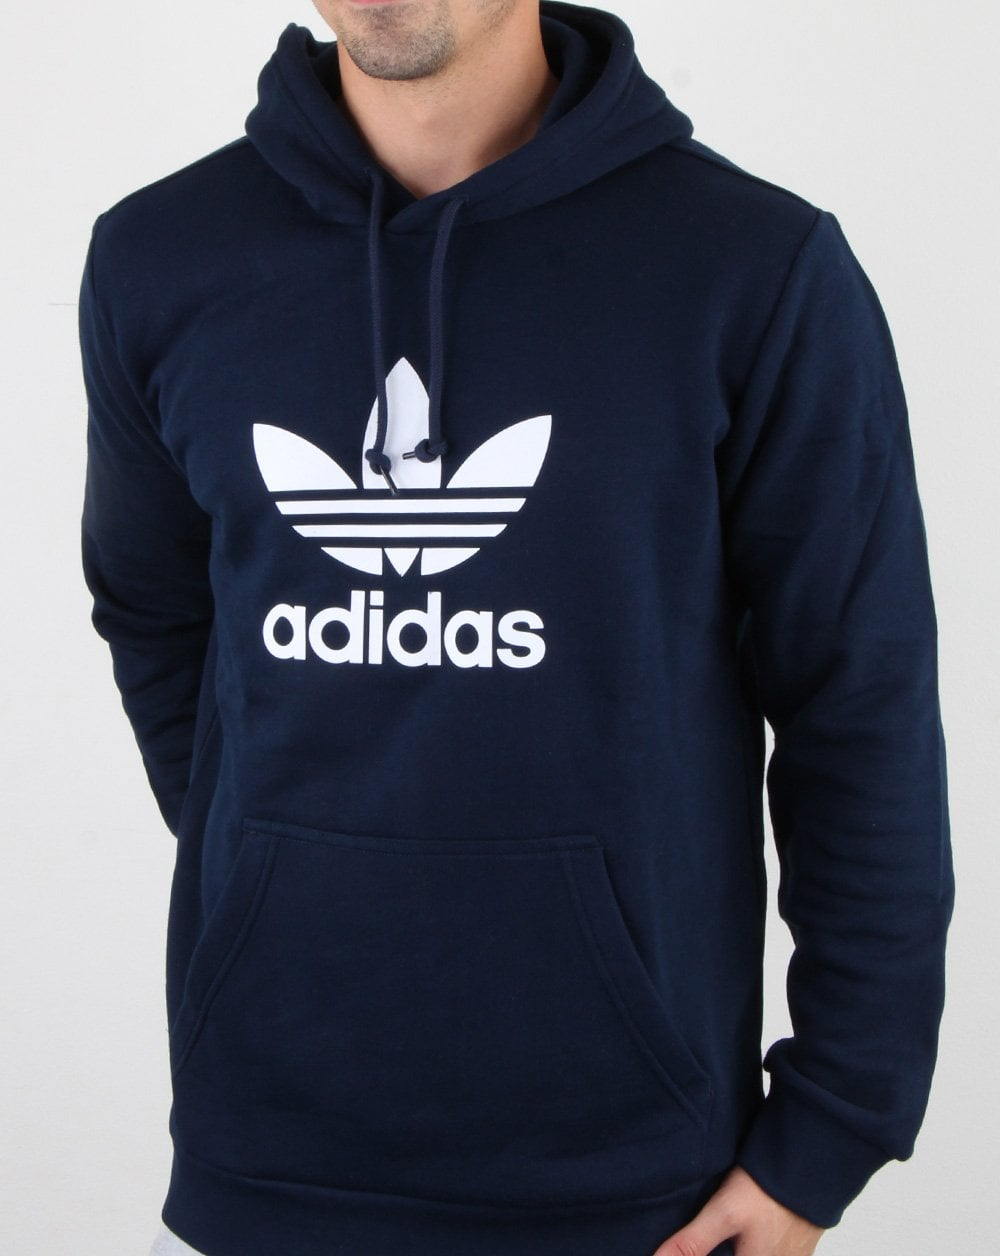 buy good fashion offer discounts Adidas Originals Trefoil Hoodie Navy - adidas At 80s Casual Classics